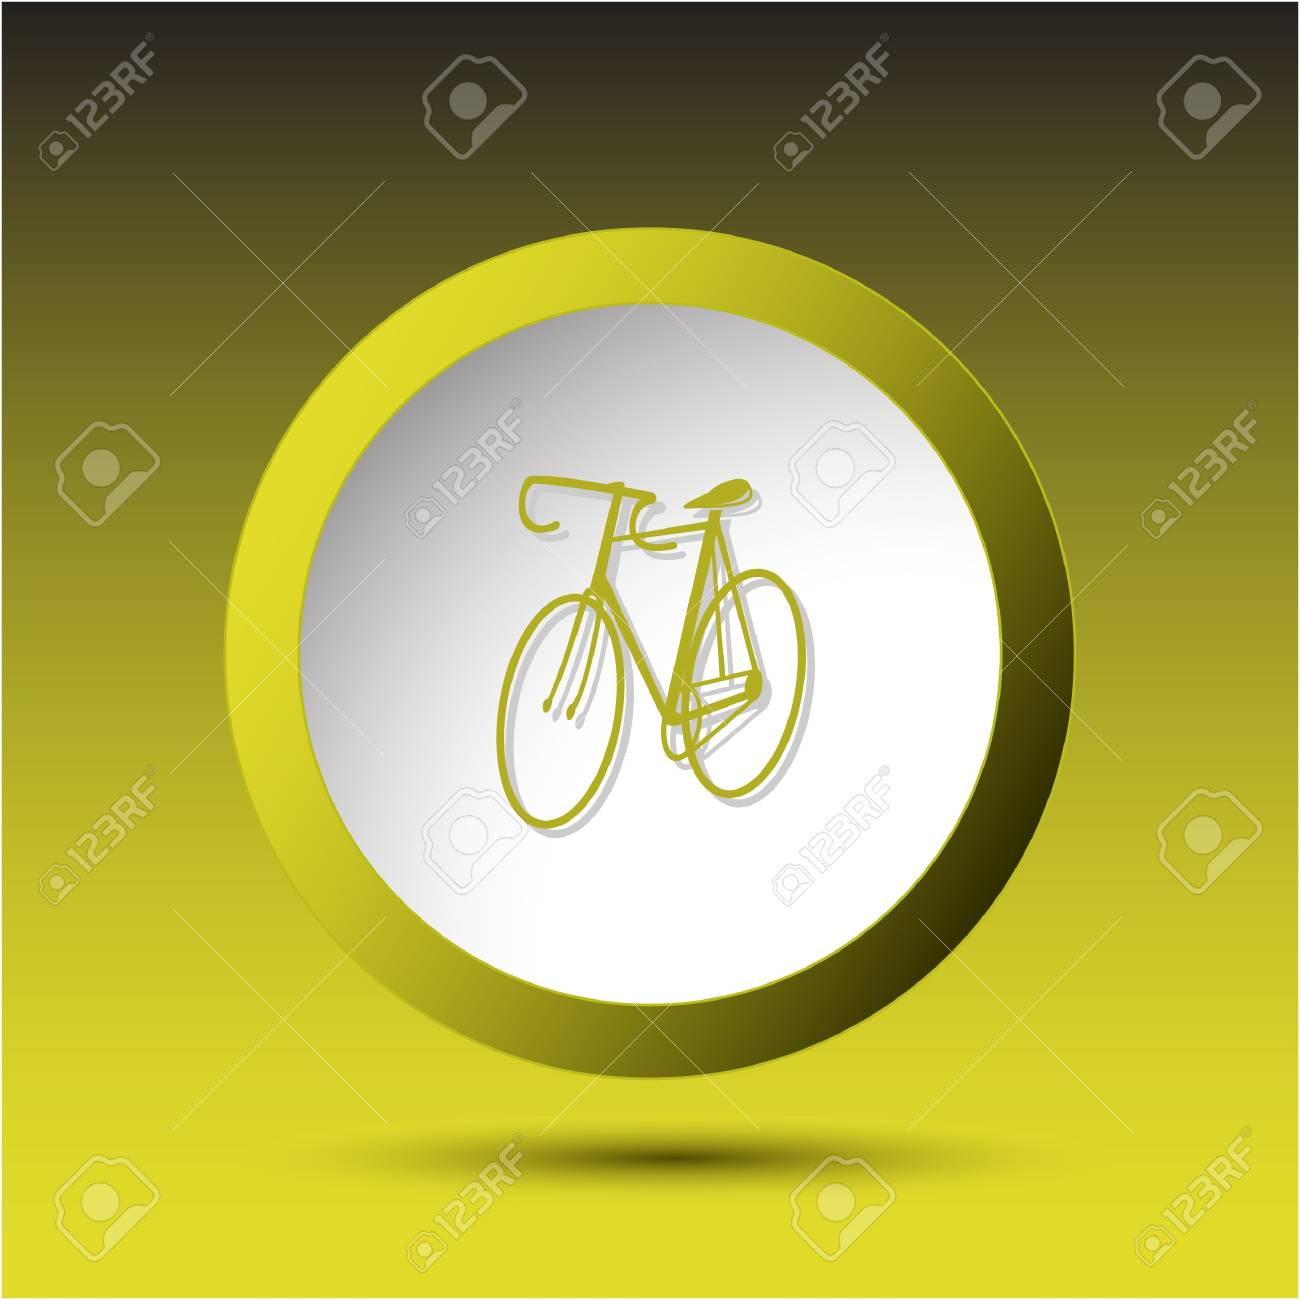 Bicycle Plastic button Stock Photo - 15615932